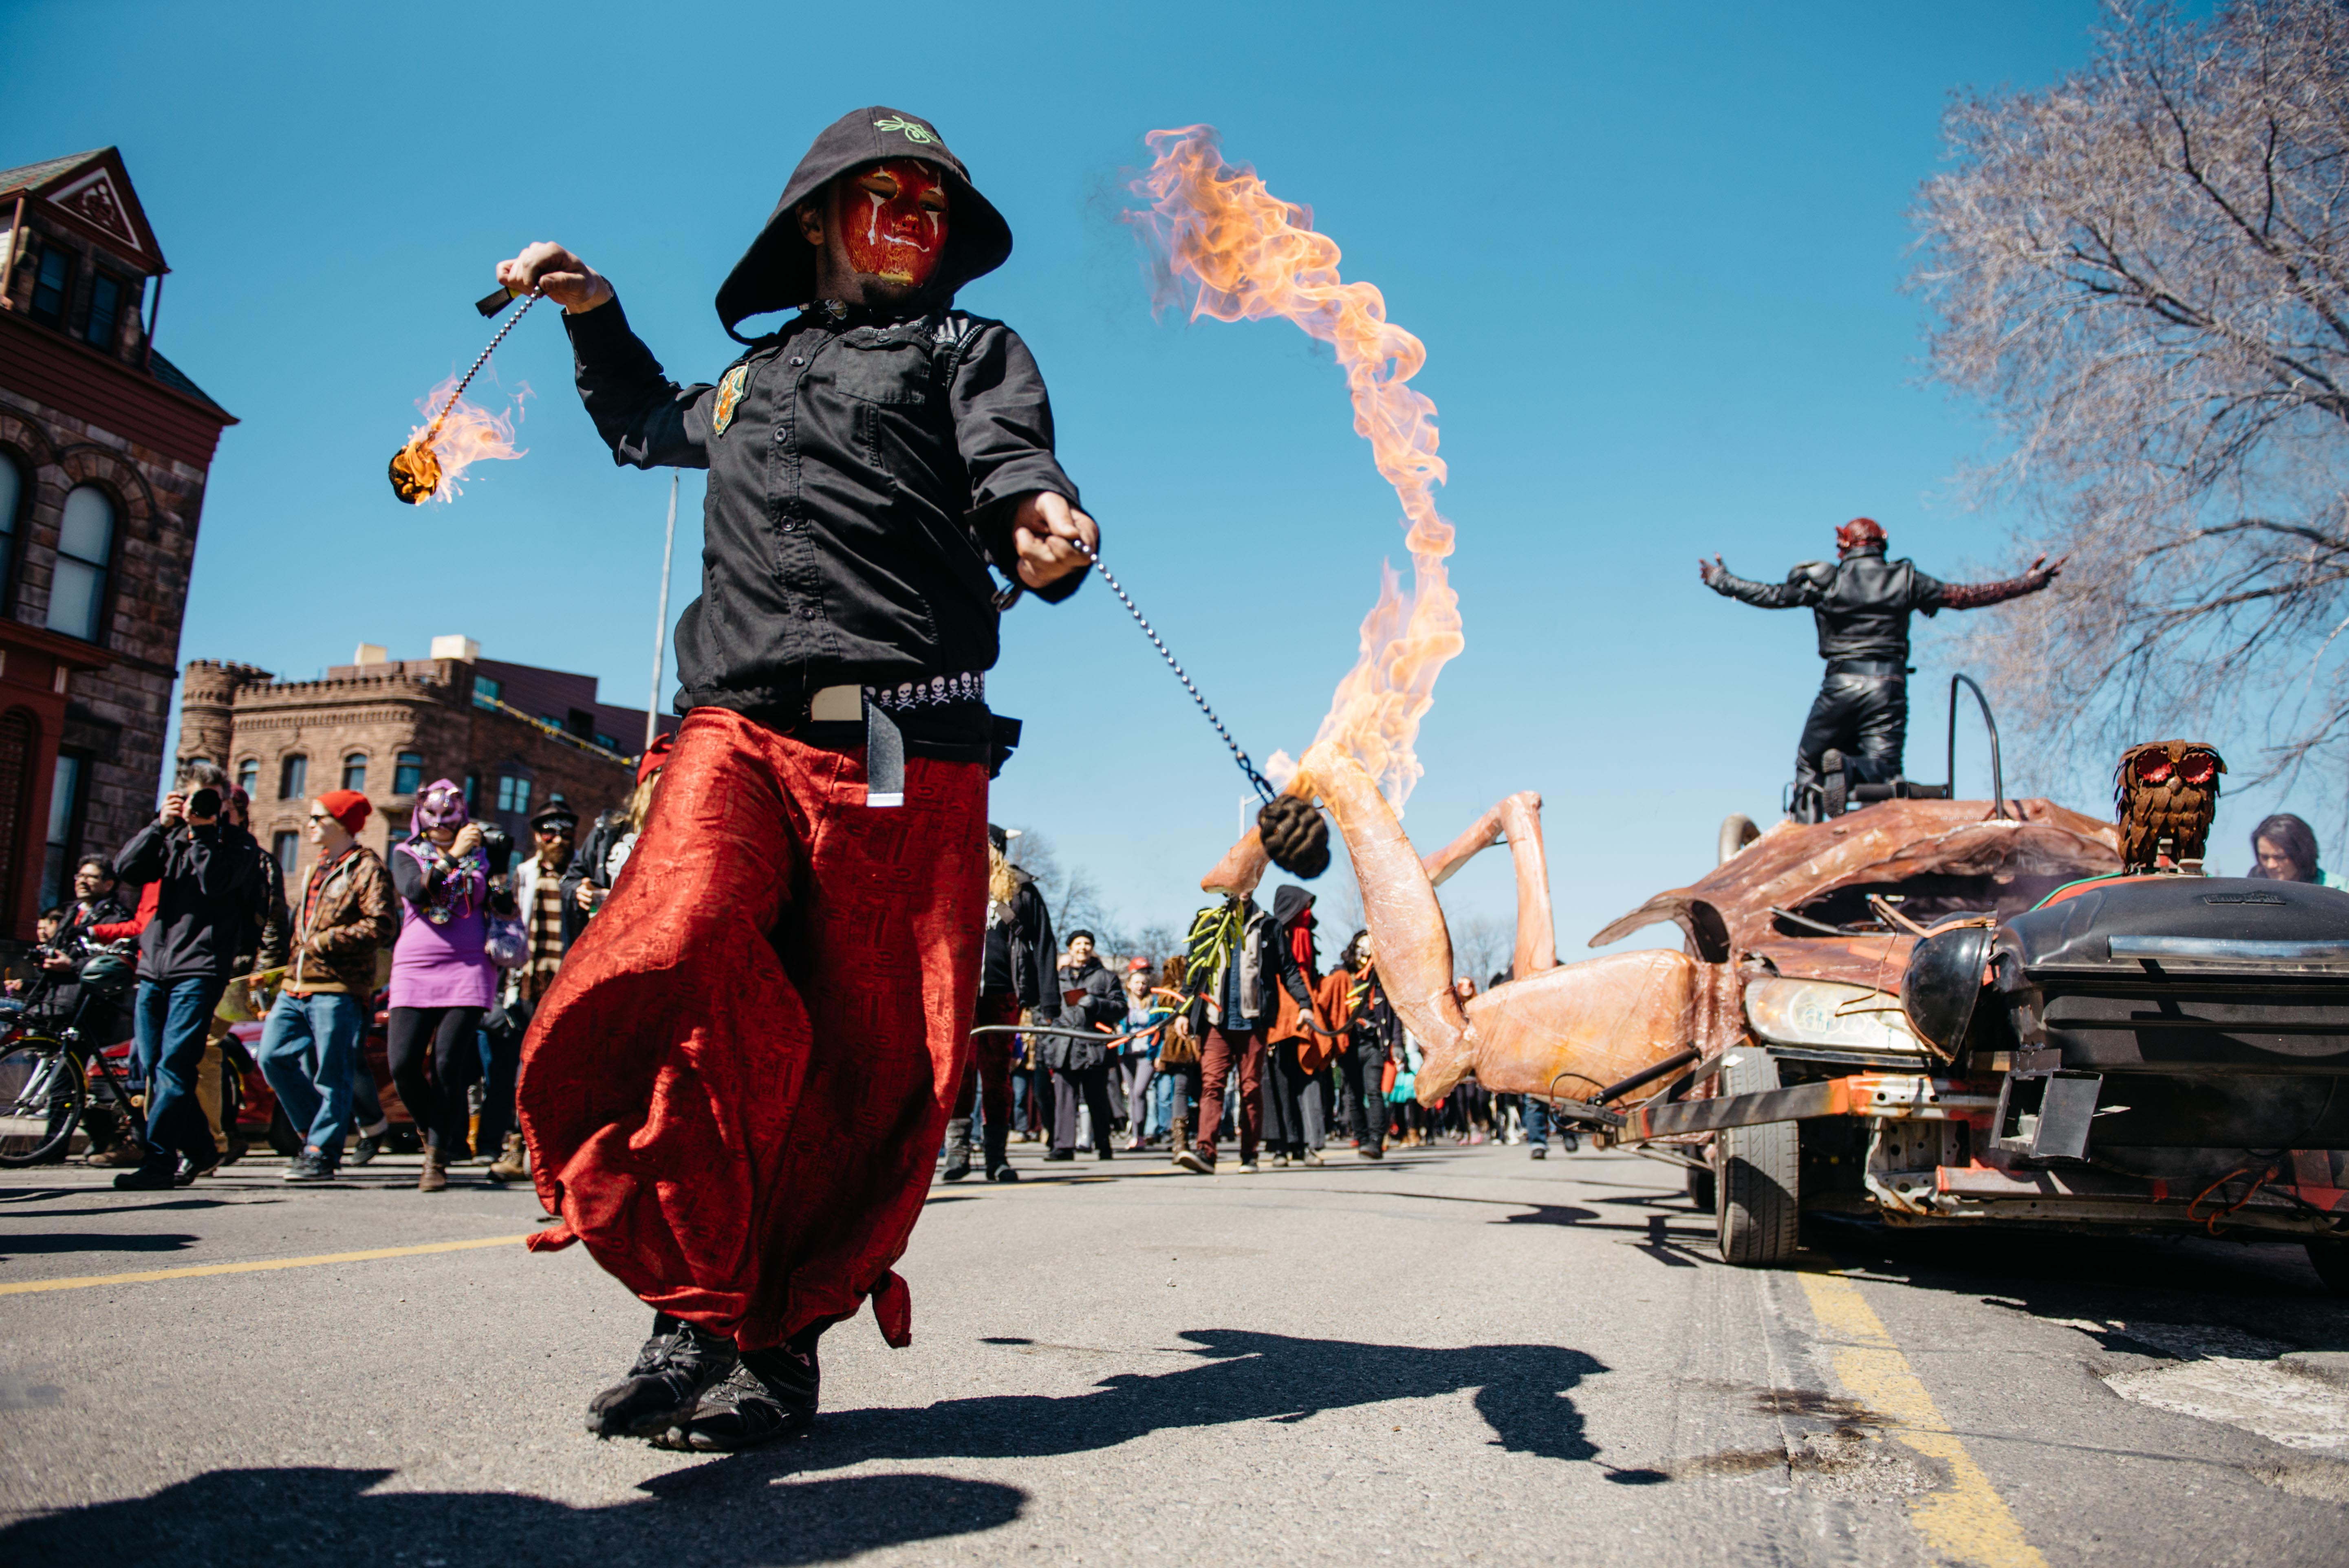 Marche du Nain Rouge in Detroit, Michigan - Spring events in Detroit